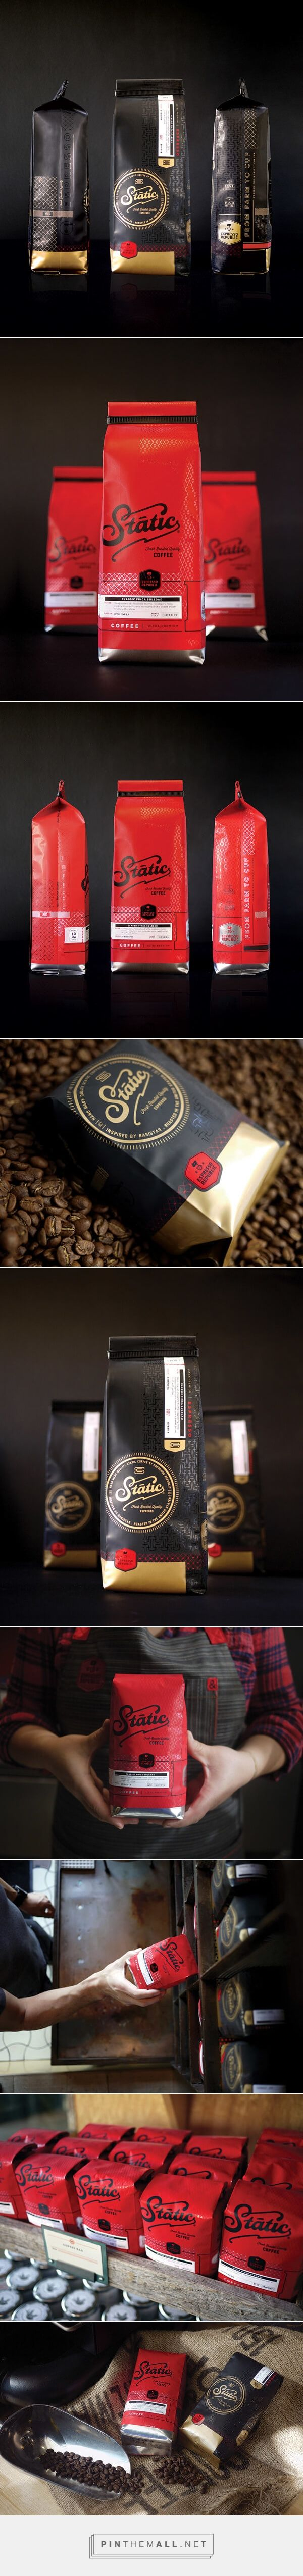 Fantastic Branding by Farm Design for Coffee Brand Static - created via https://pinthemall.net